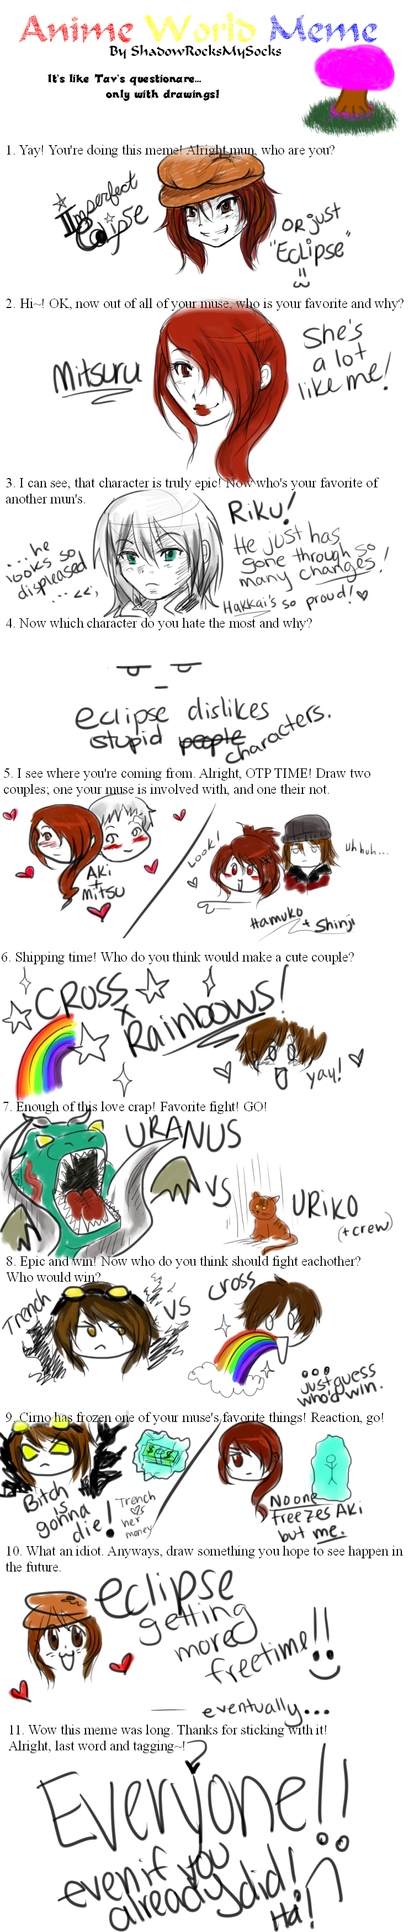 Anime World Meme by ImperfectEclipse